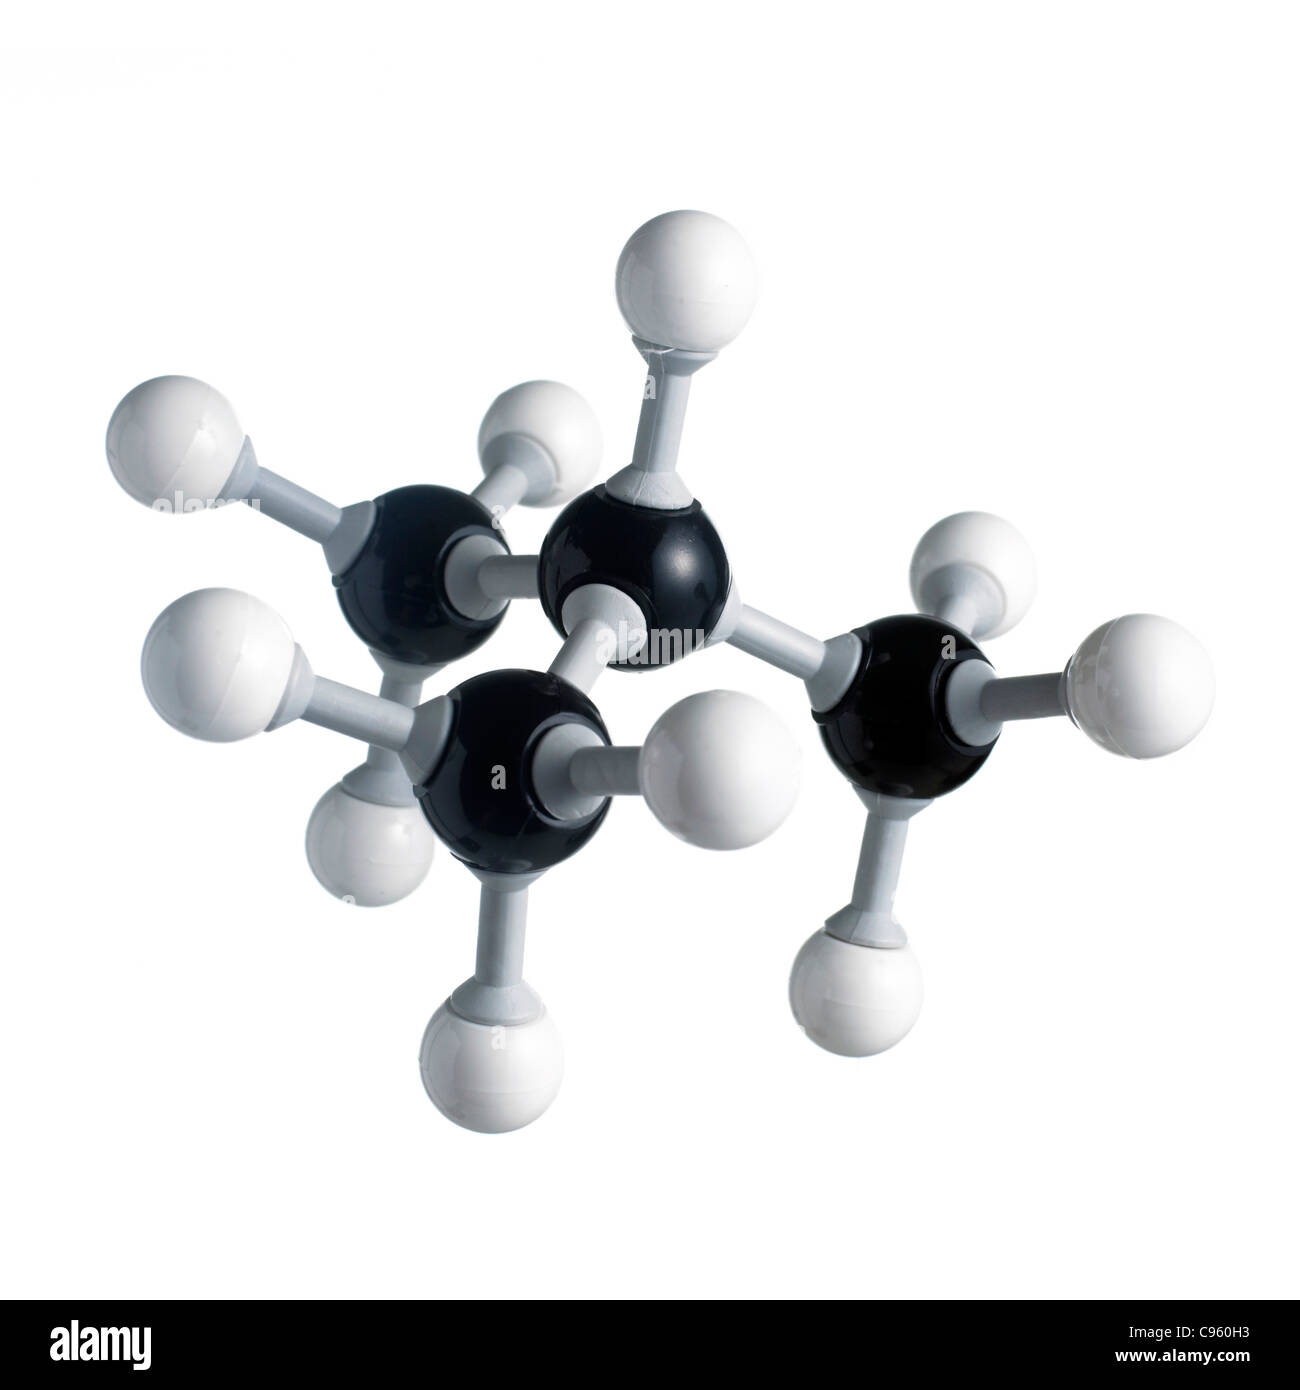 Isobutane molecule. Atoms are represented as spheres and are colour-coded: carbon (black) and hydrogen (white). - Stock Image